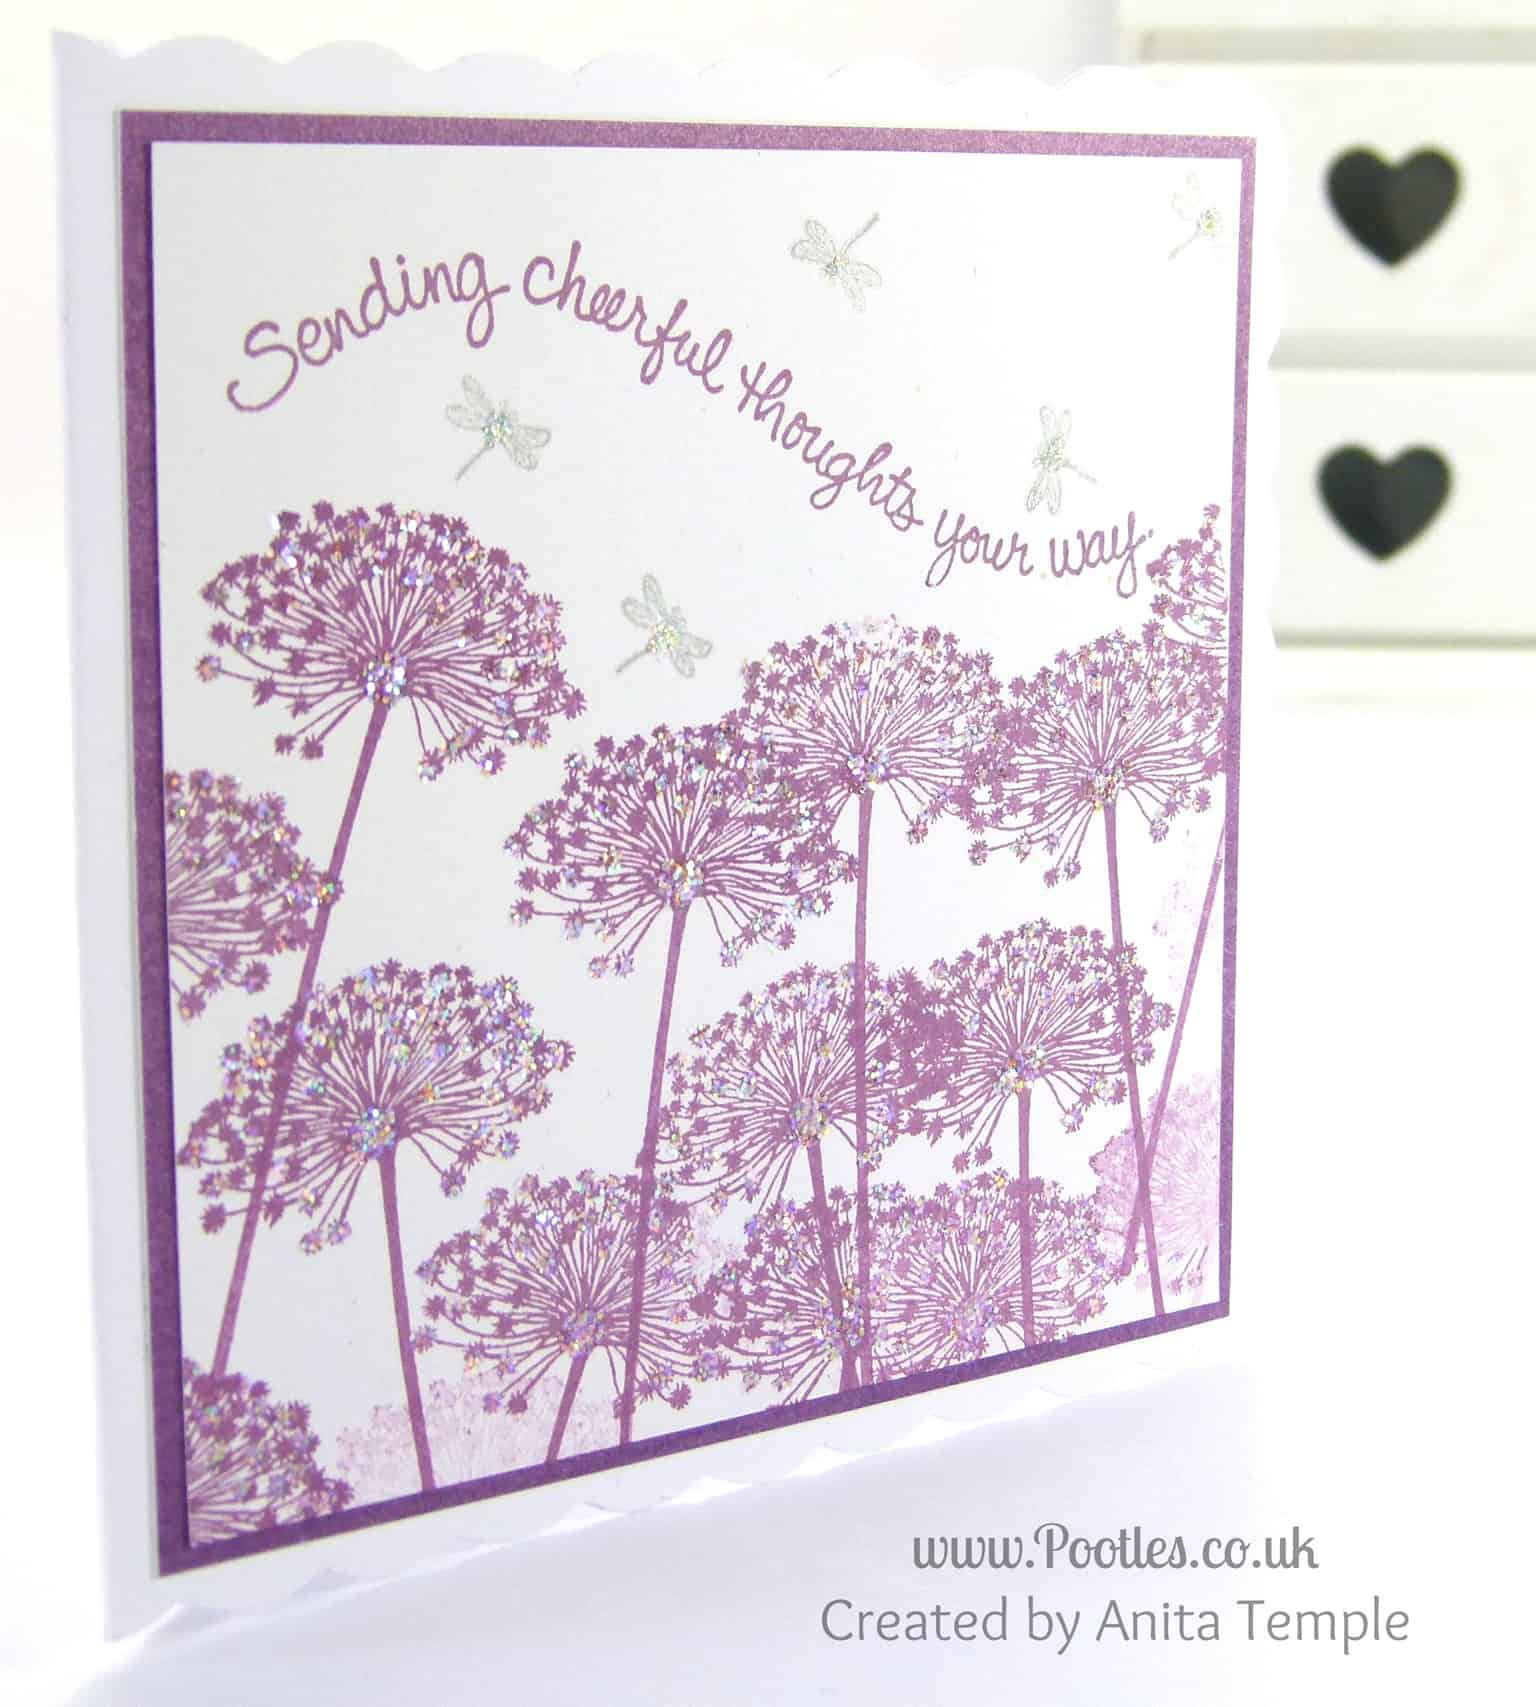 Stampin' Up! UK Demonstrator Pootles - Serene Sillhouettes Inspired Card Anita's Card